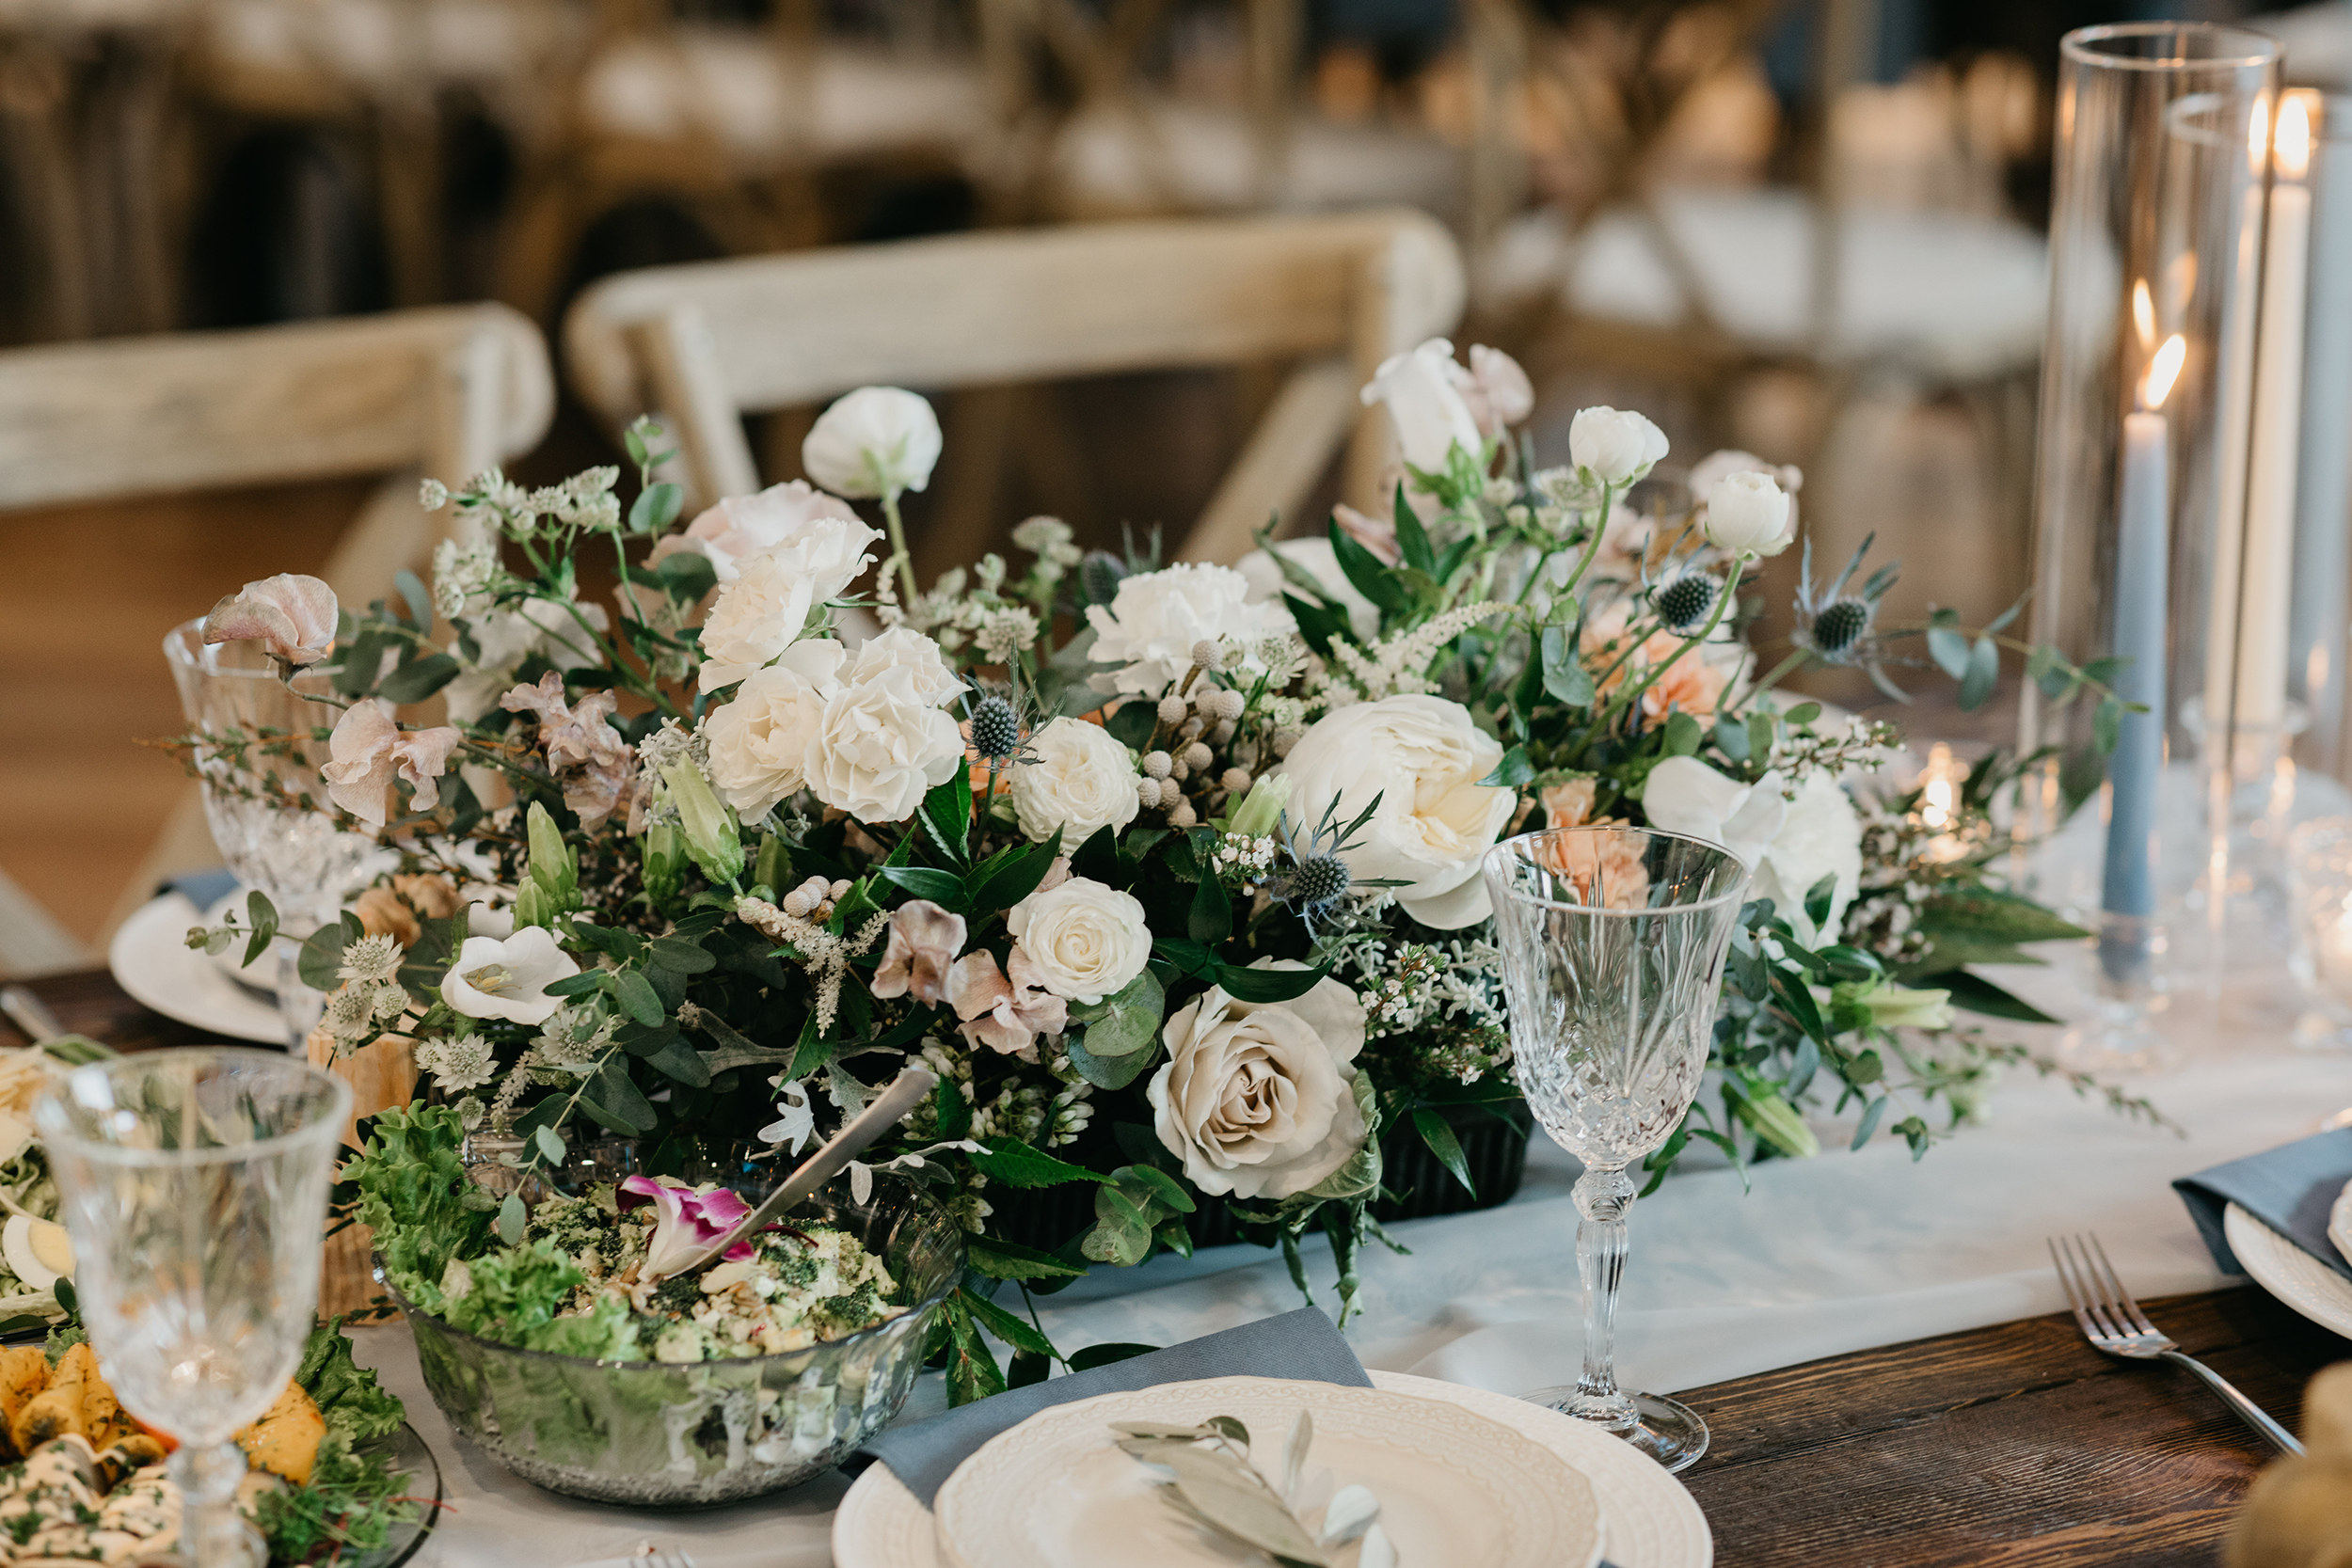 Violette-fleurs-event-design-roseville-Nelli-noel-photography-the-falls-event-center-Curated-table-centerpieces-reception.jpg